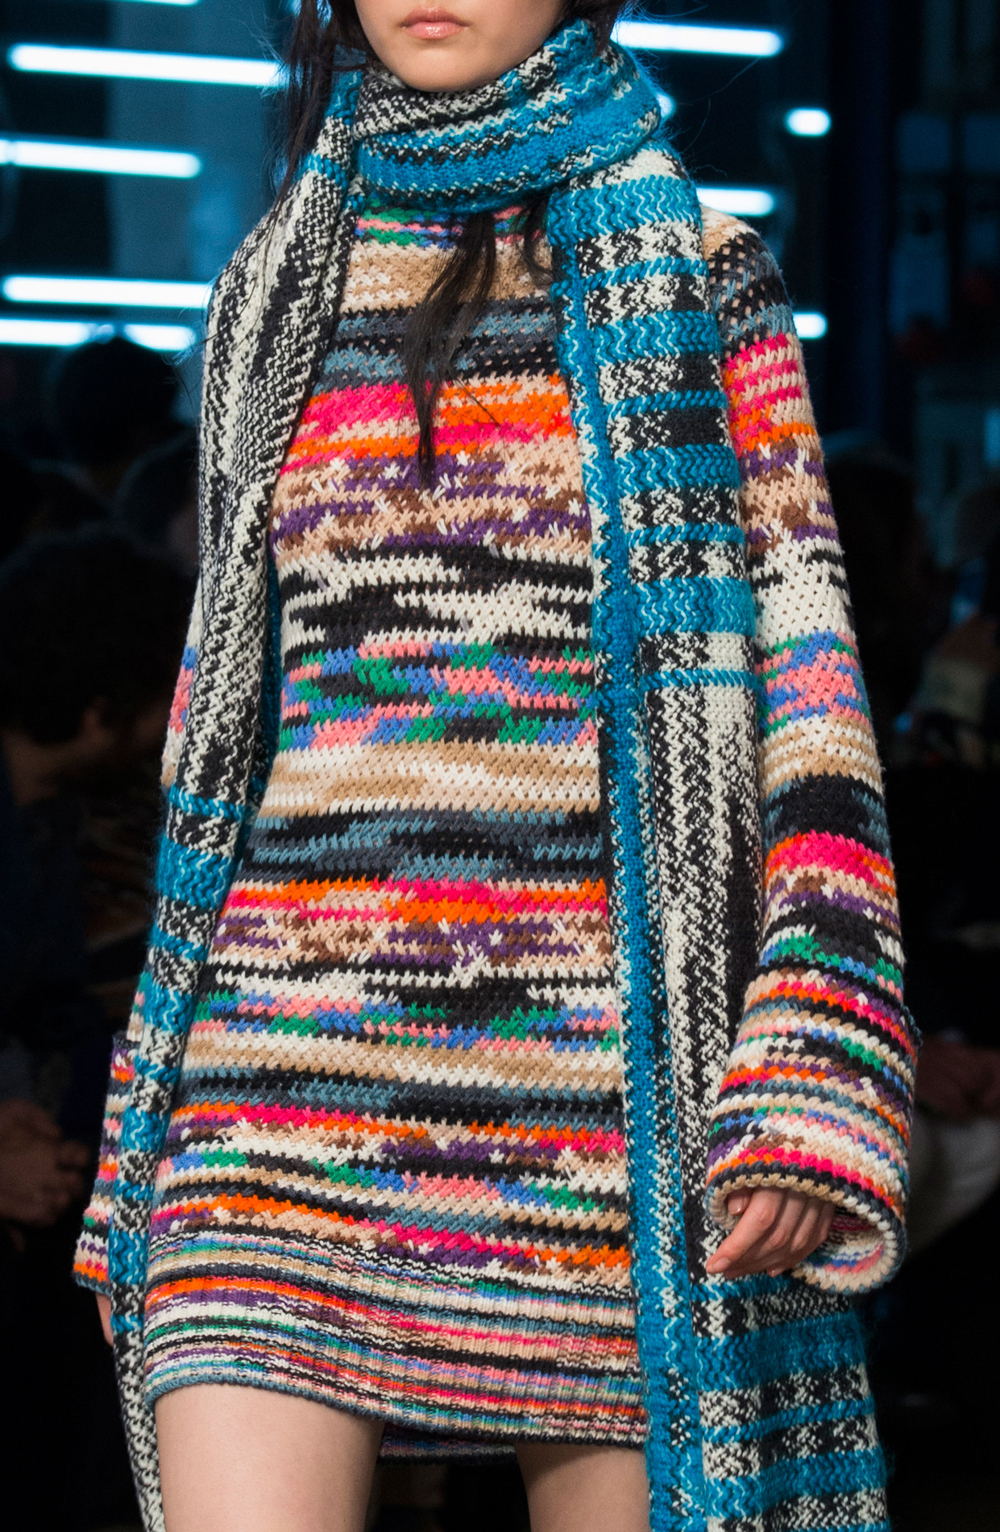 A new way to how to wear a scarf inspired by Fall/Winter 2016 collections - follow examples of Missoni, Bottega Veneta & Etro and embrace one of the autumn 2016 trends now. Via www.fashionedbylove.co.uk